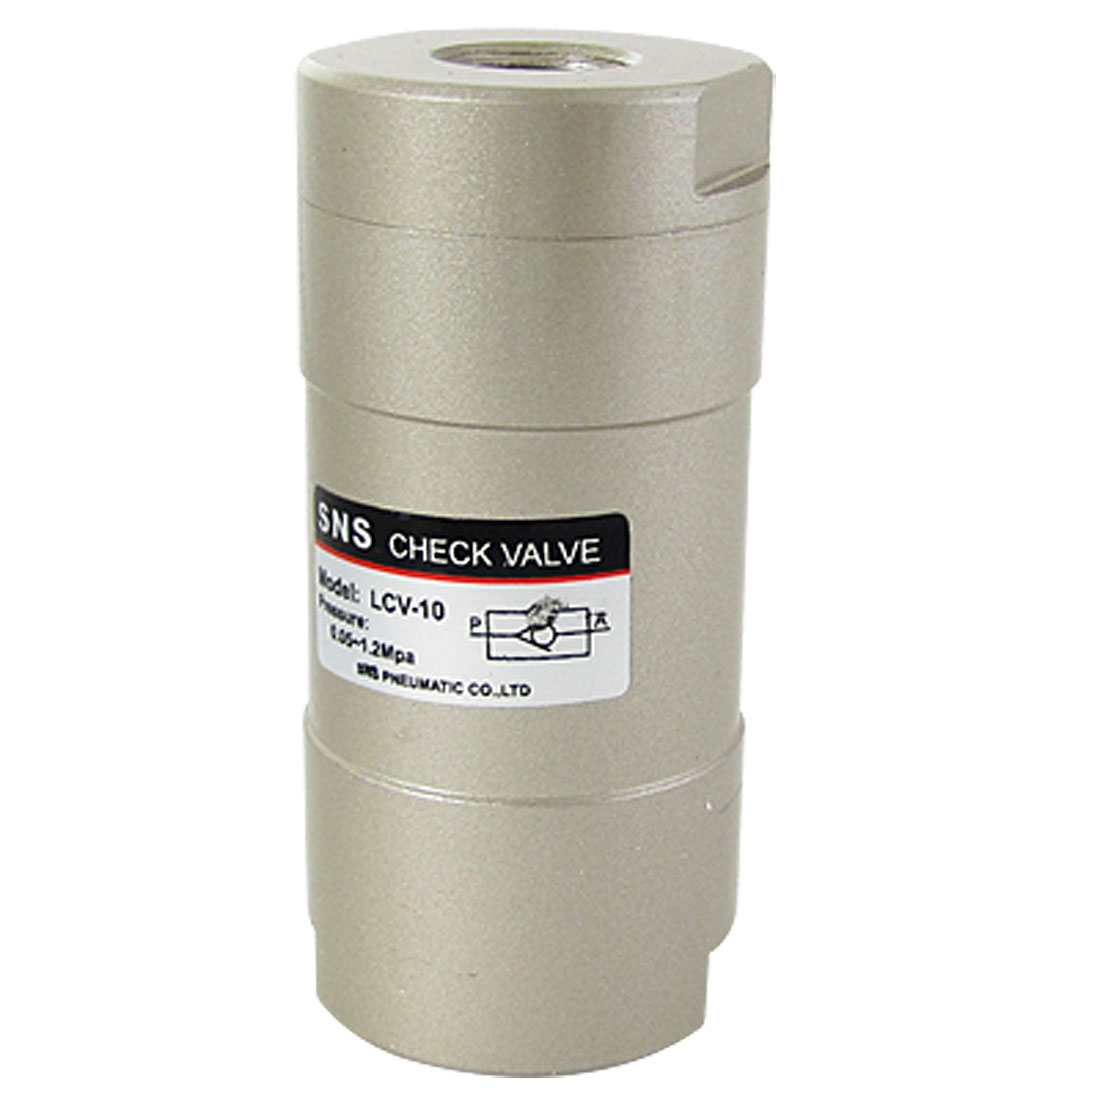 "LCV-10 3/8"" Port 19/32"" Thread Pneumatic Non Return Check Valve"